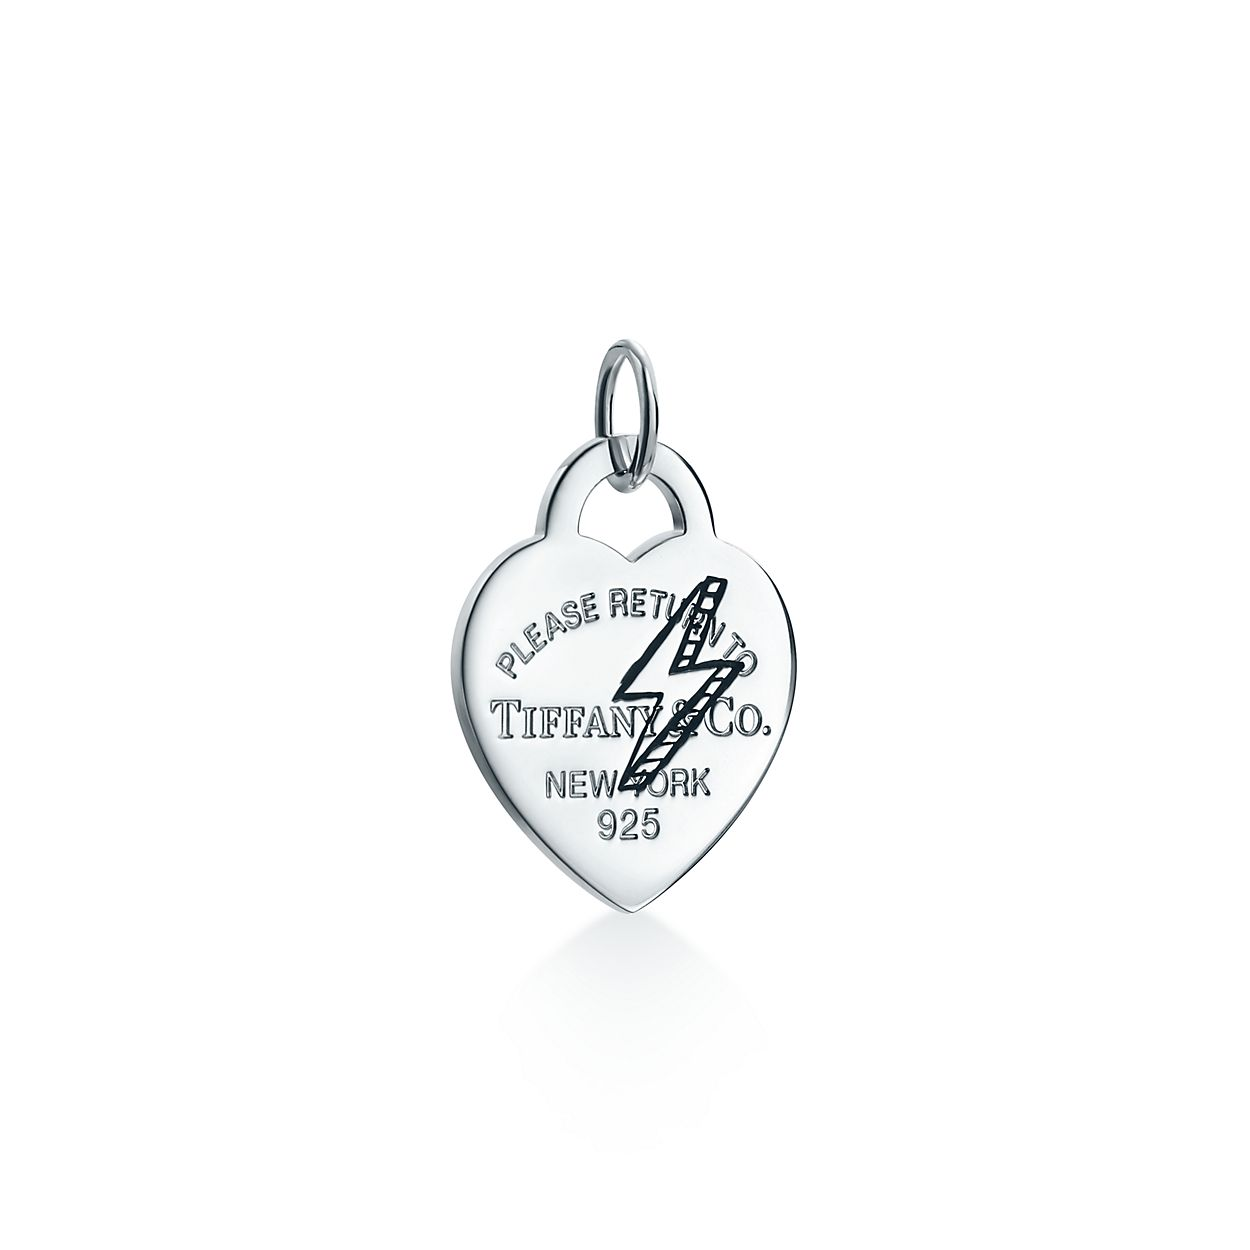 Return to tiffany etched lightning bolt heart tag charm in return to tiffanyetched lightning bolt heartbrtag charm mozeypictures Choice Image